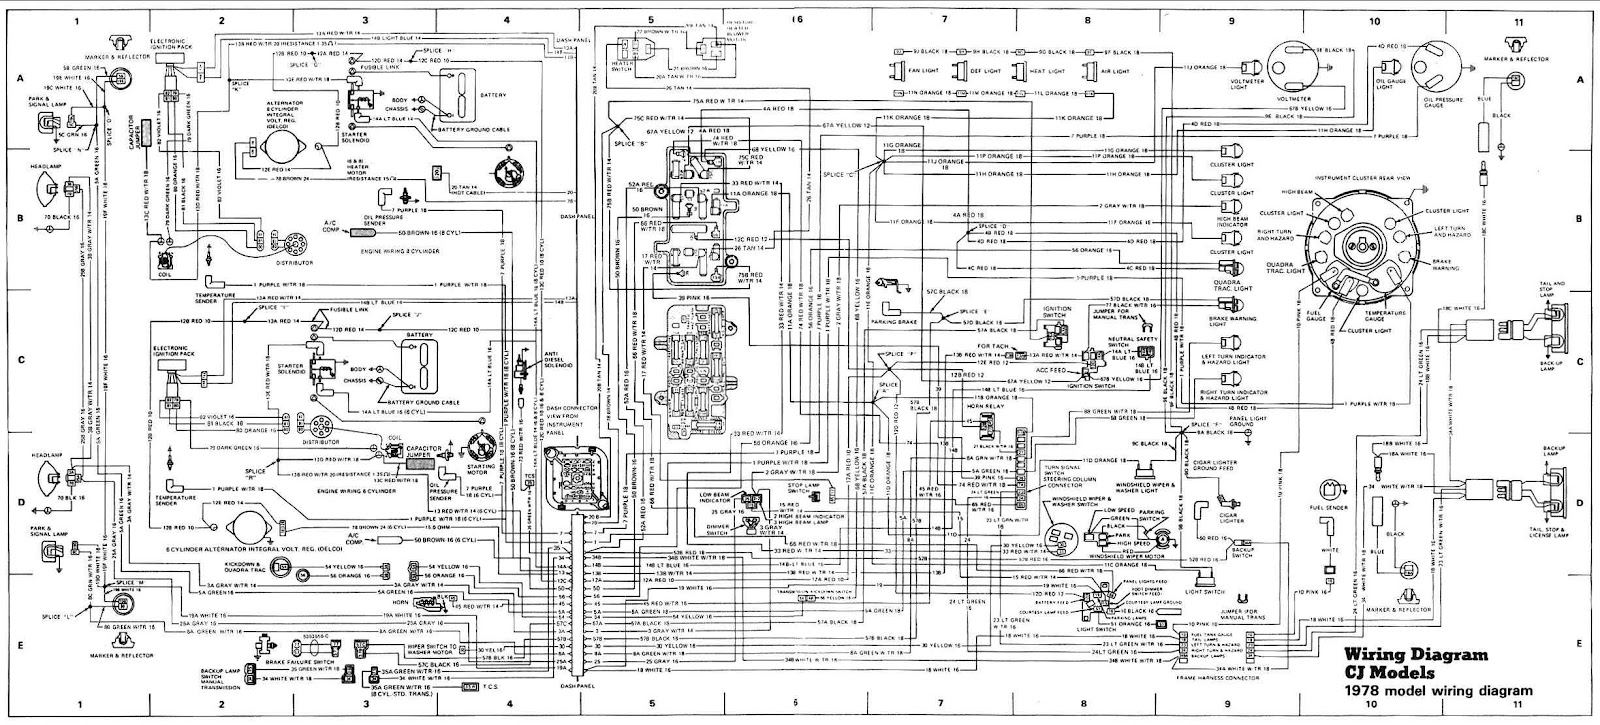 hight resolution of 1978 jeep cj5 wiring diagram free download wiring diagrams on john deere 210le service manual led